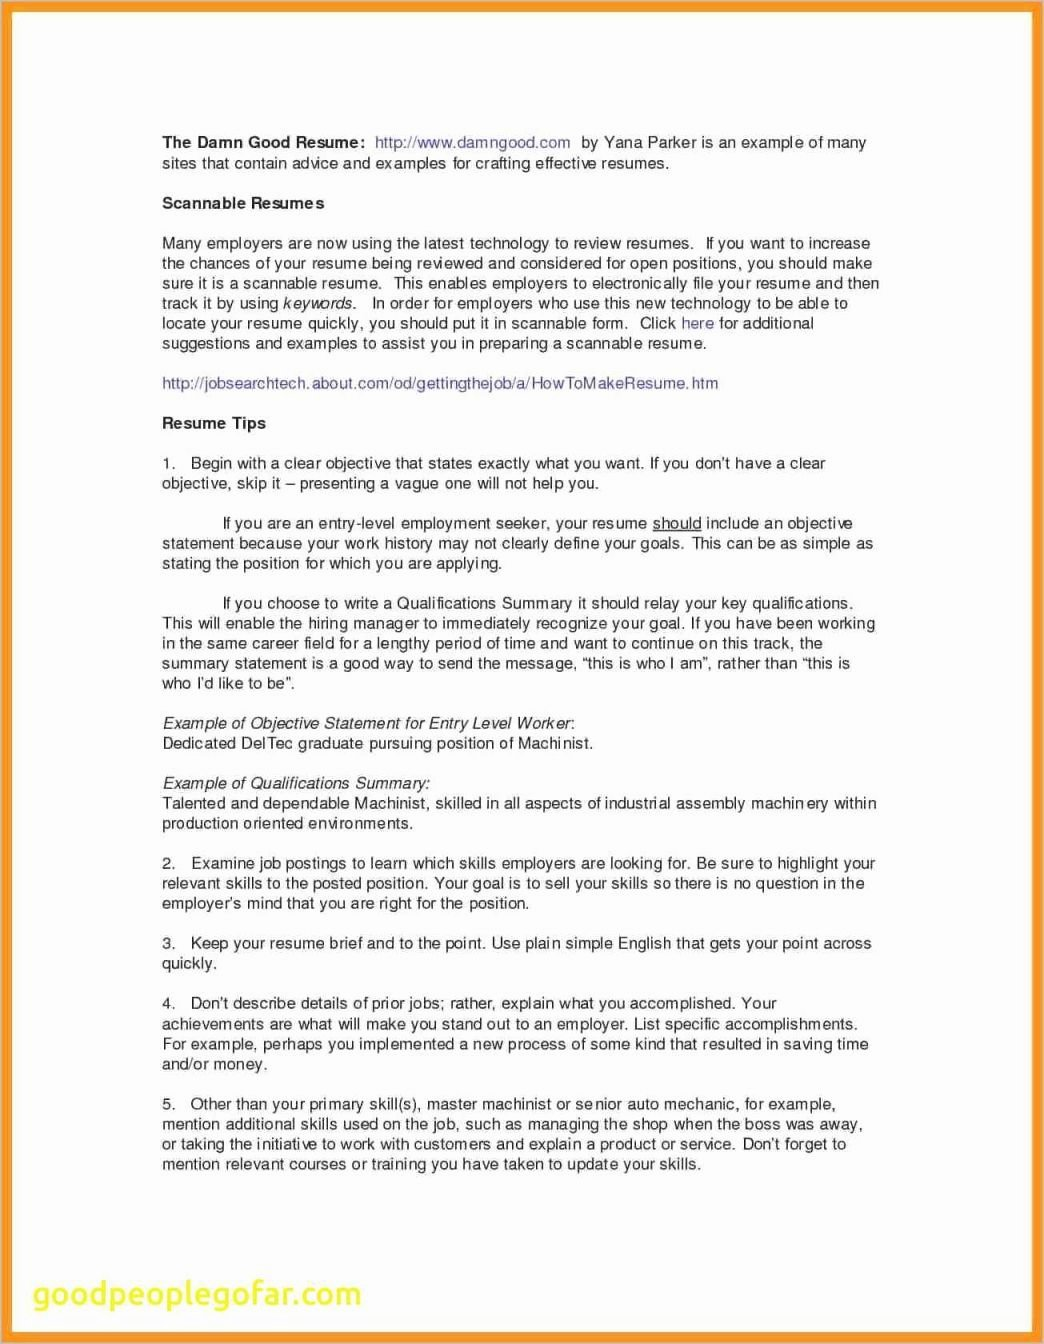 Very Help Desk Goals and Objectives Examples Qk23